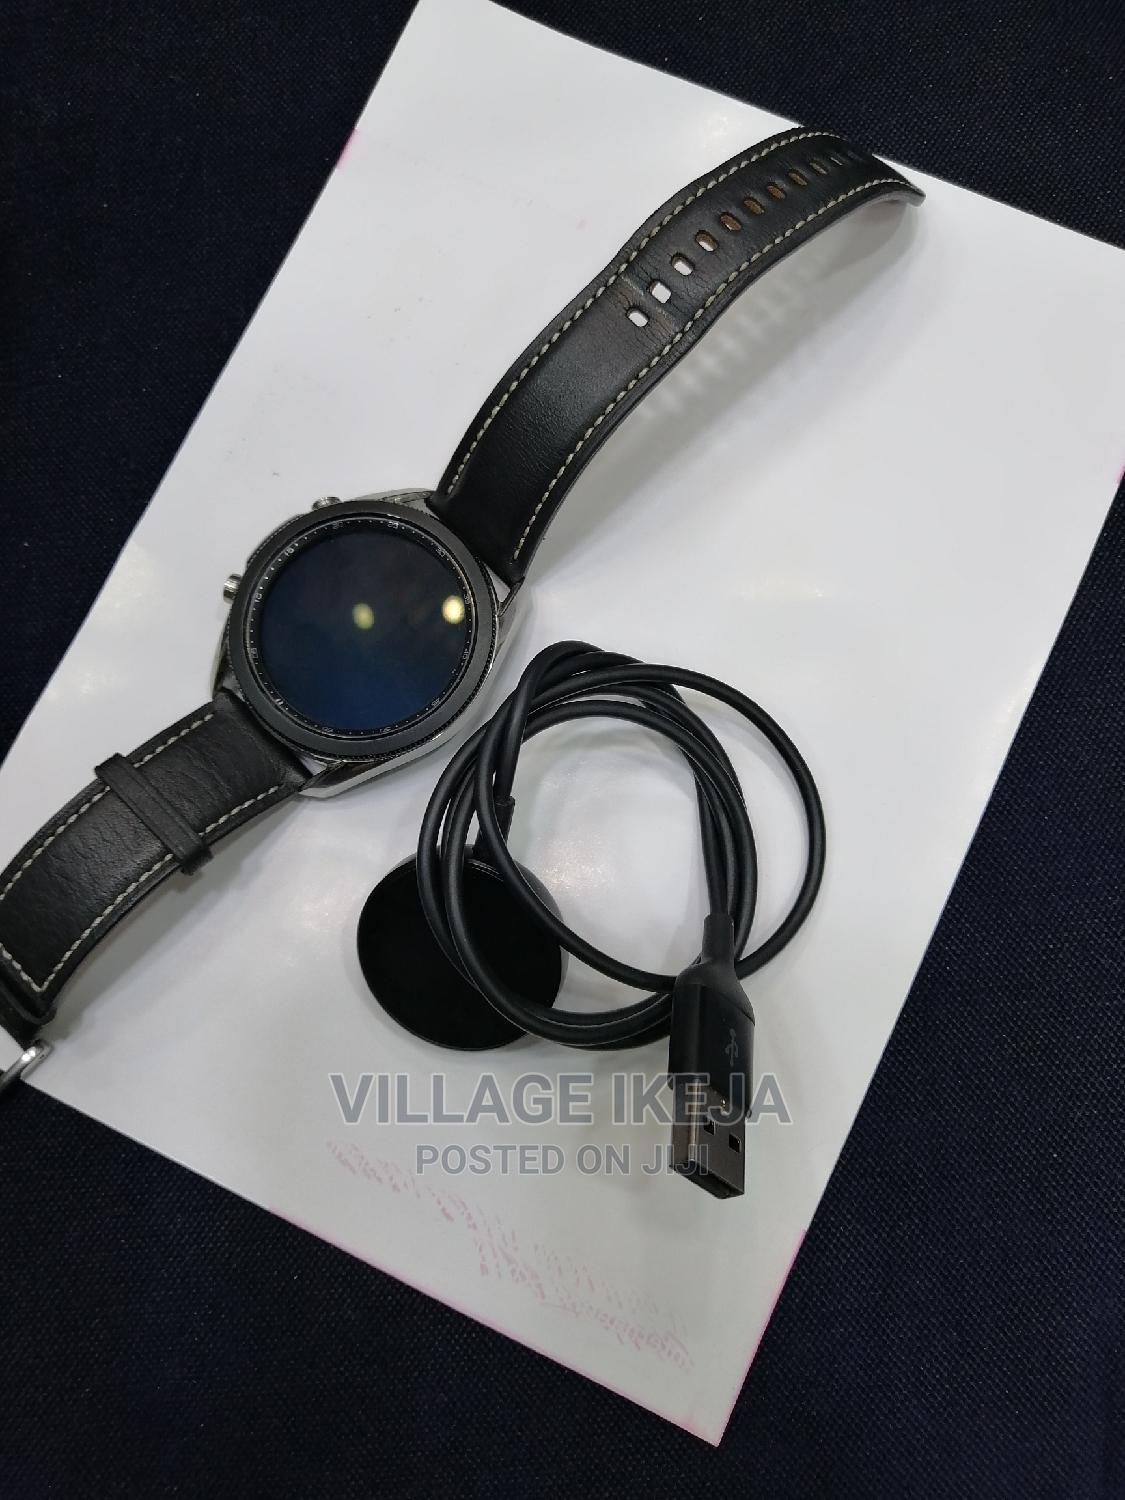 Used Samsung Galaxy Watch 3 45mm | Smart Watches & Trackers for sale in Ikeja, Lagos State, Nigeria